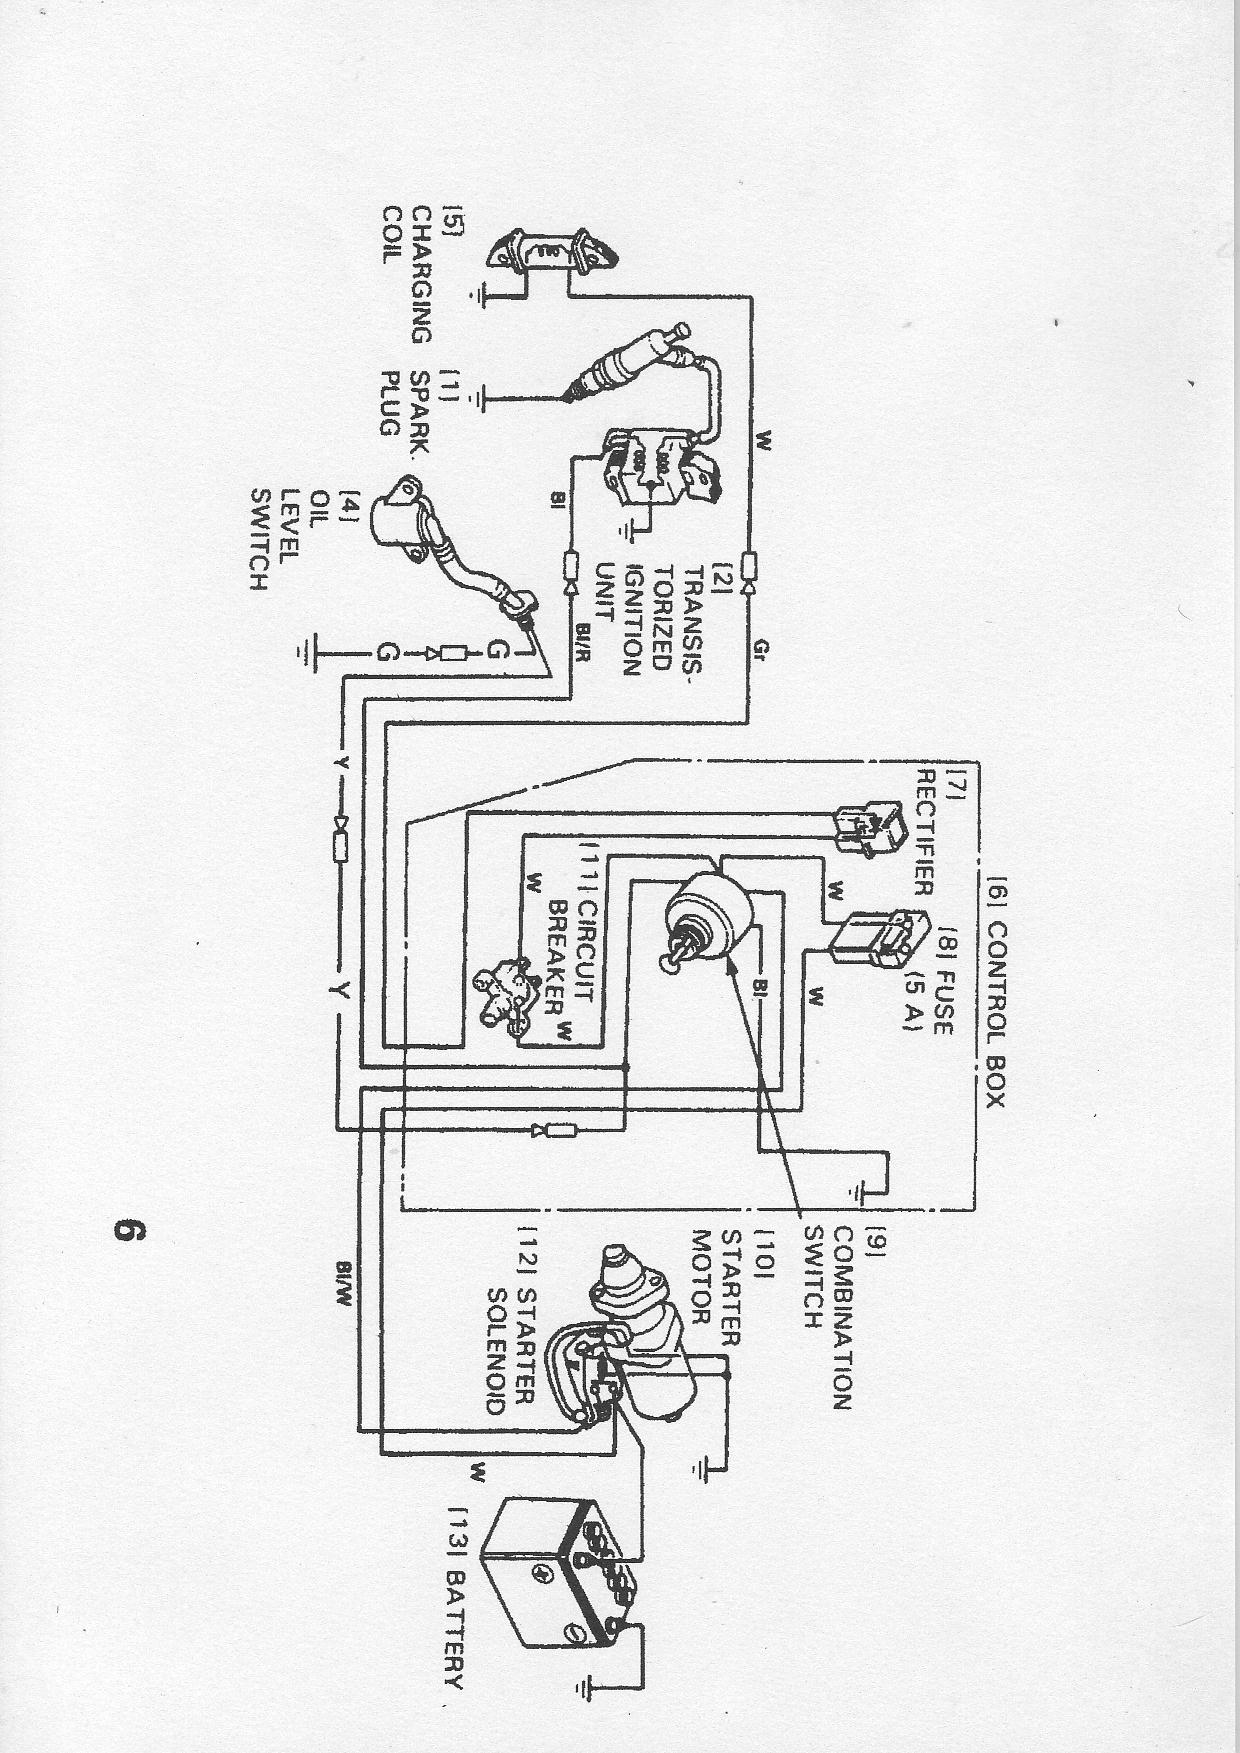 hight resolution of honda horizontal shaft engine wiring diagram index listing ofuseful informationelectric start wiring diagram with oil alert